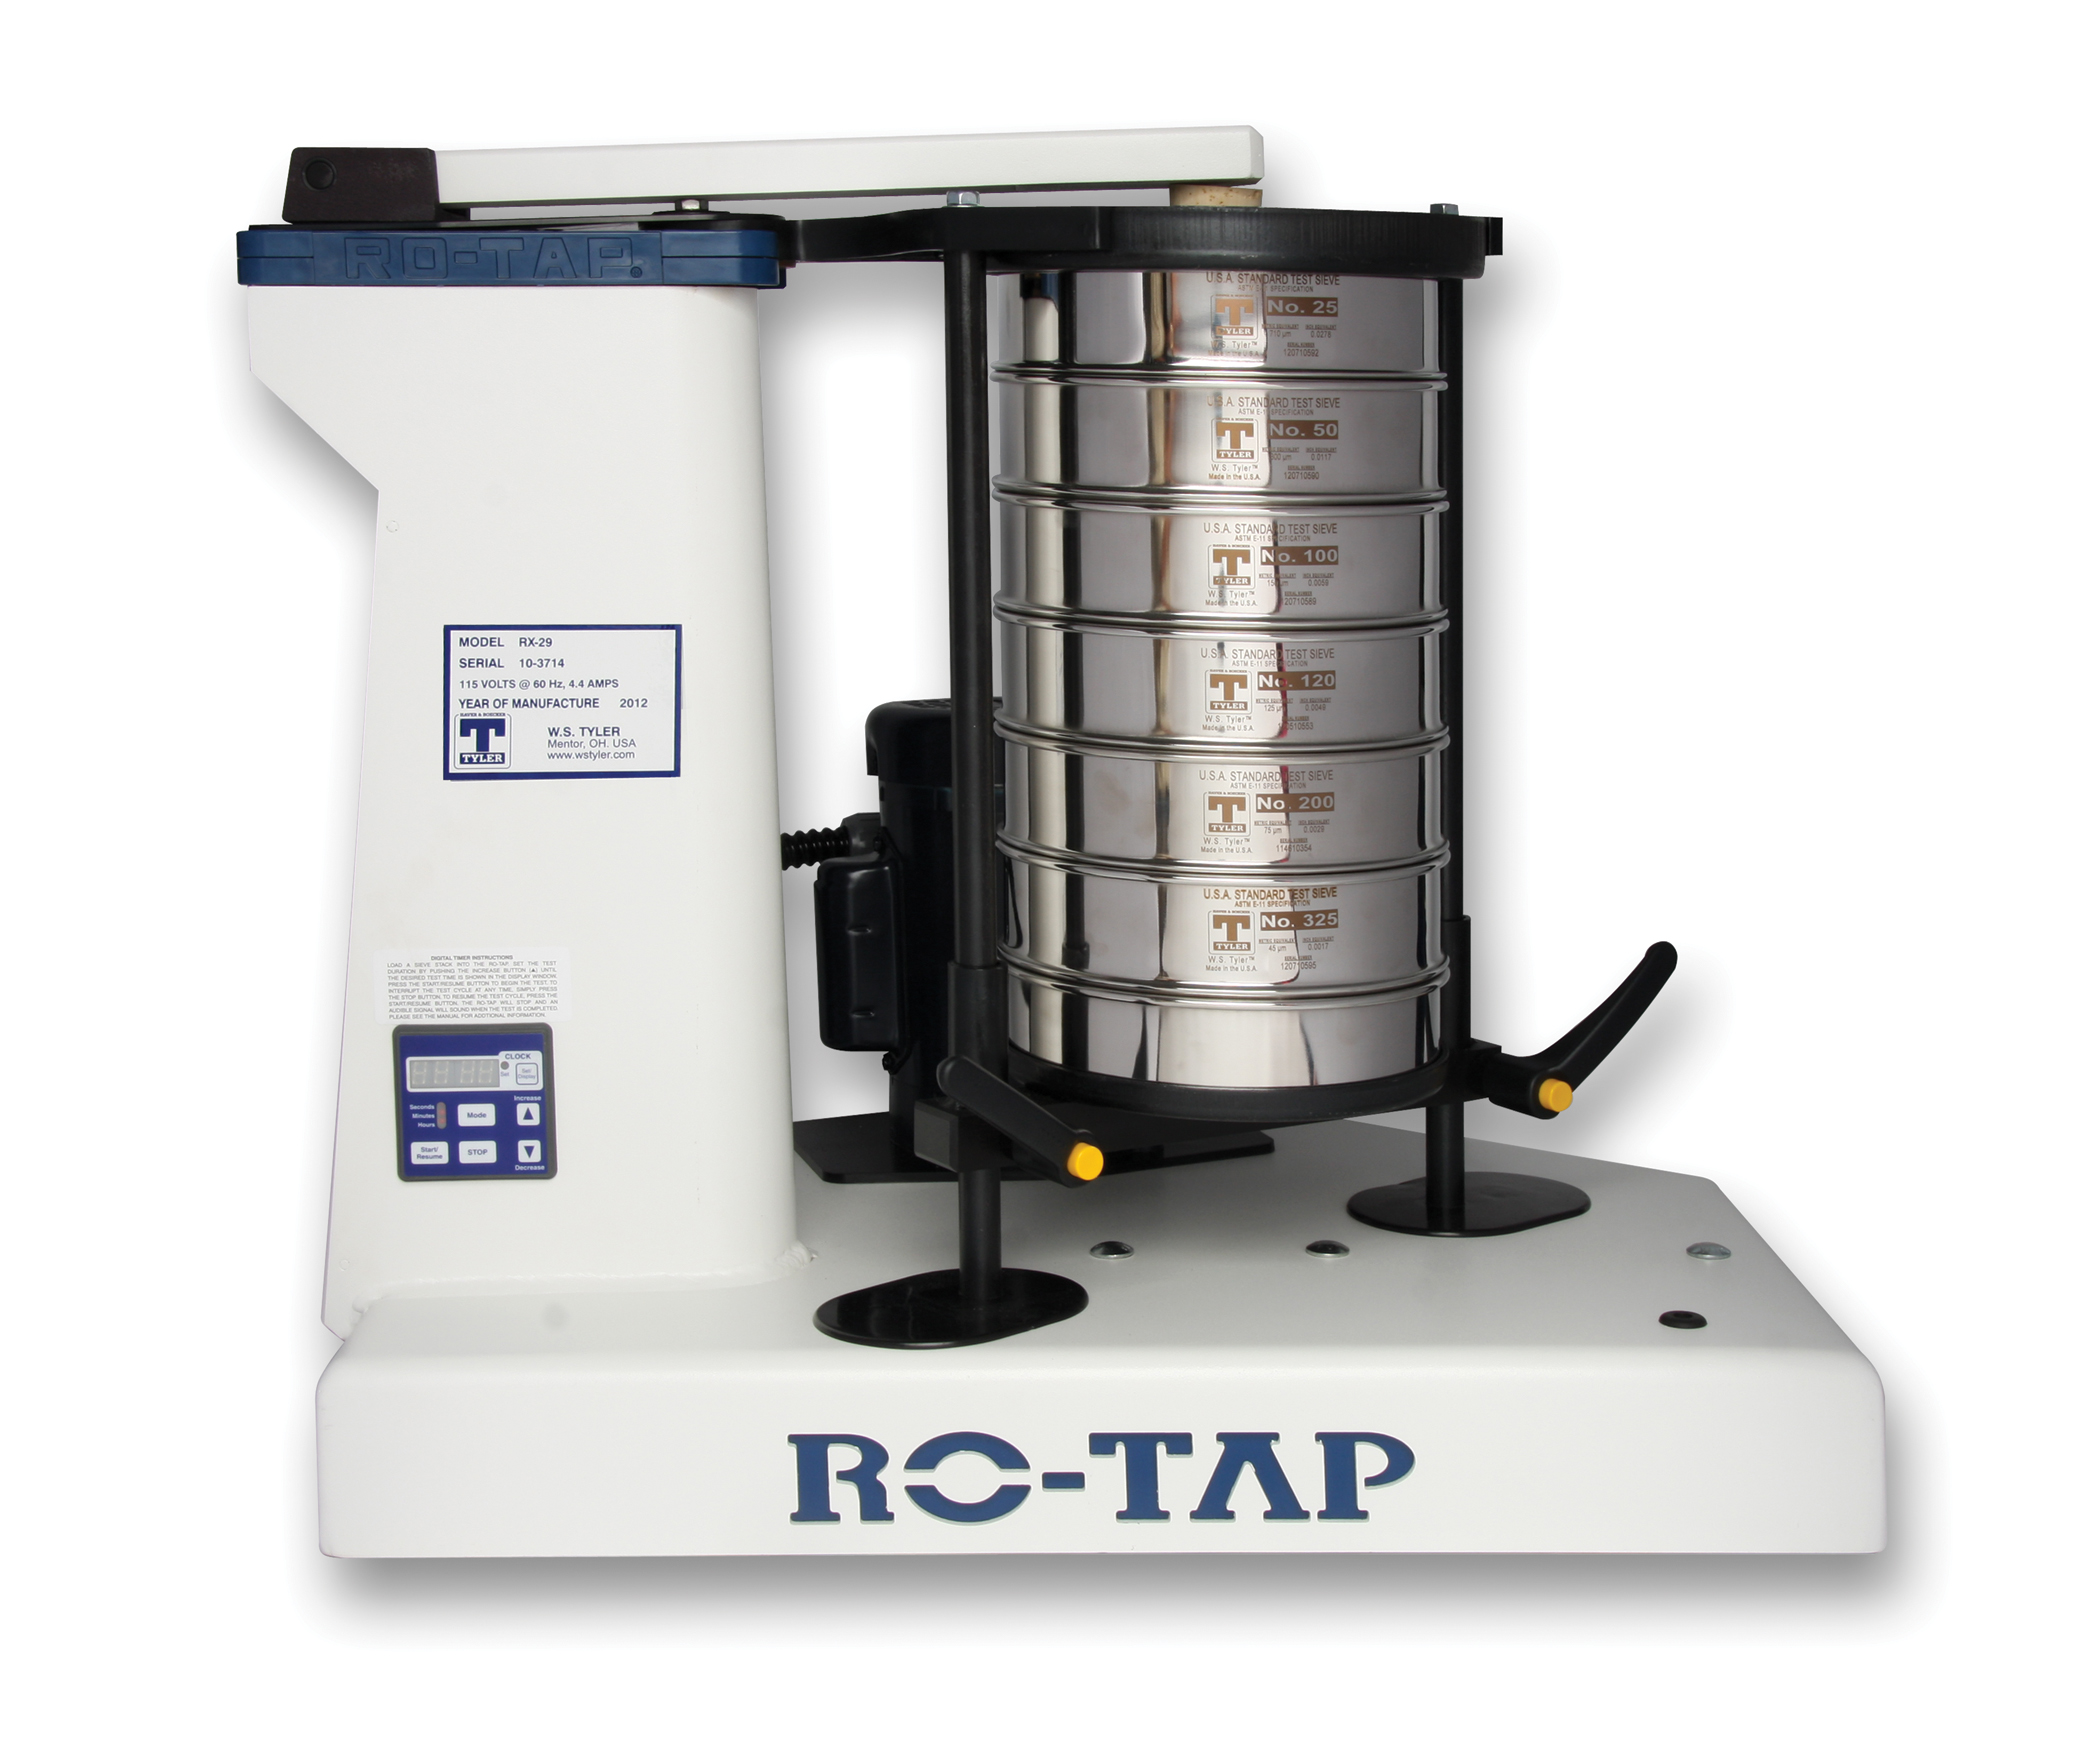 What Is a RO-TAP®Sieve Shaker? (Definition, Types, and Calibration + Video)